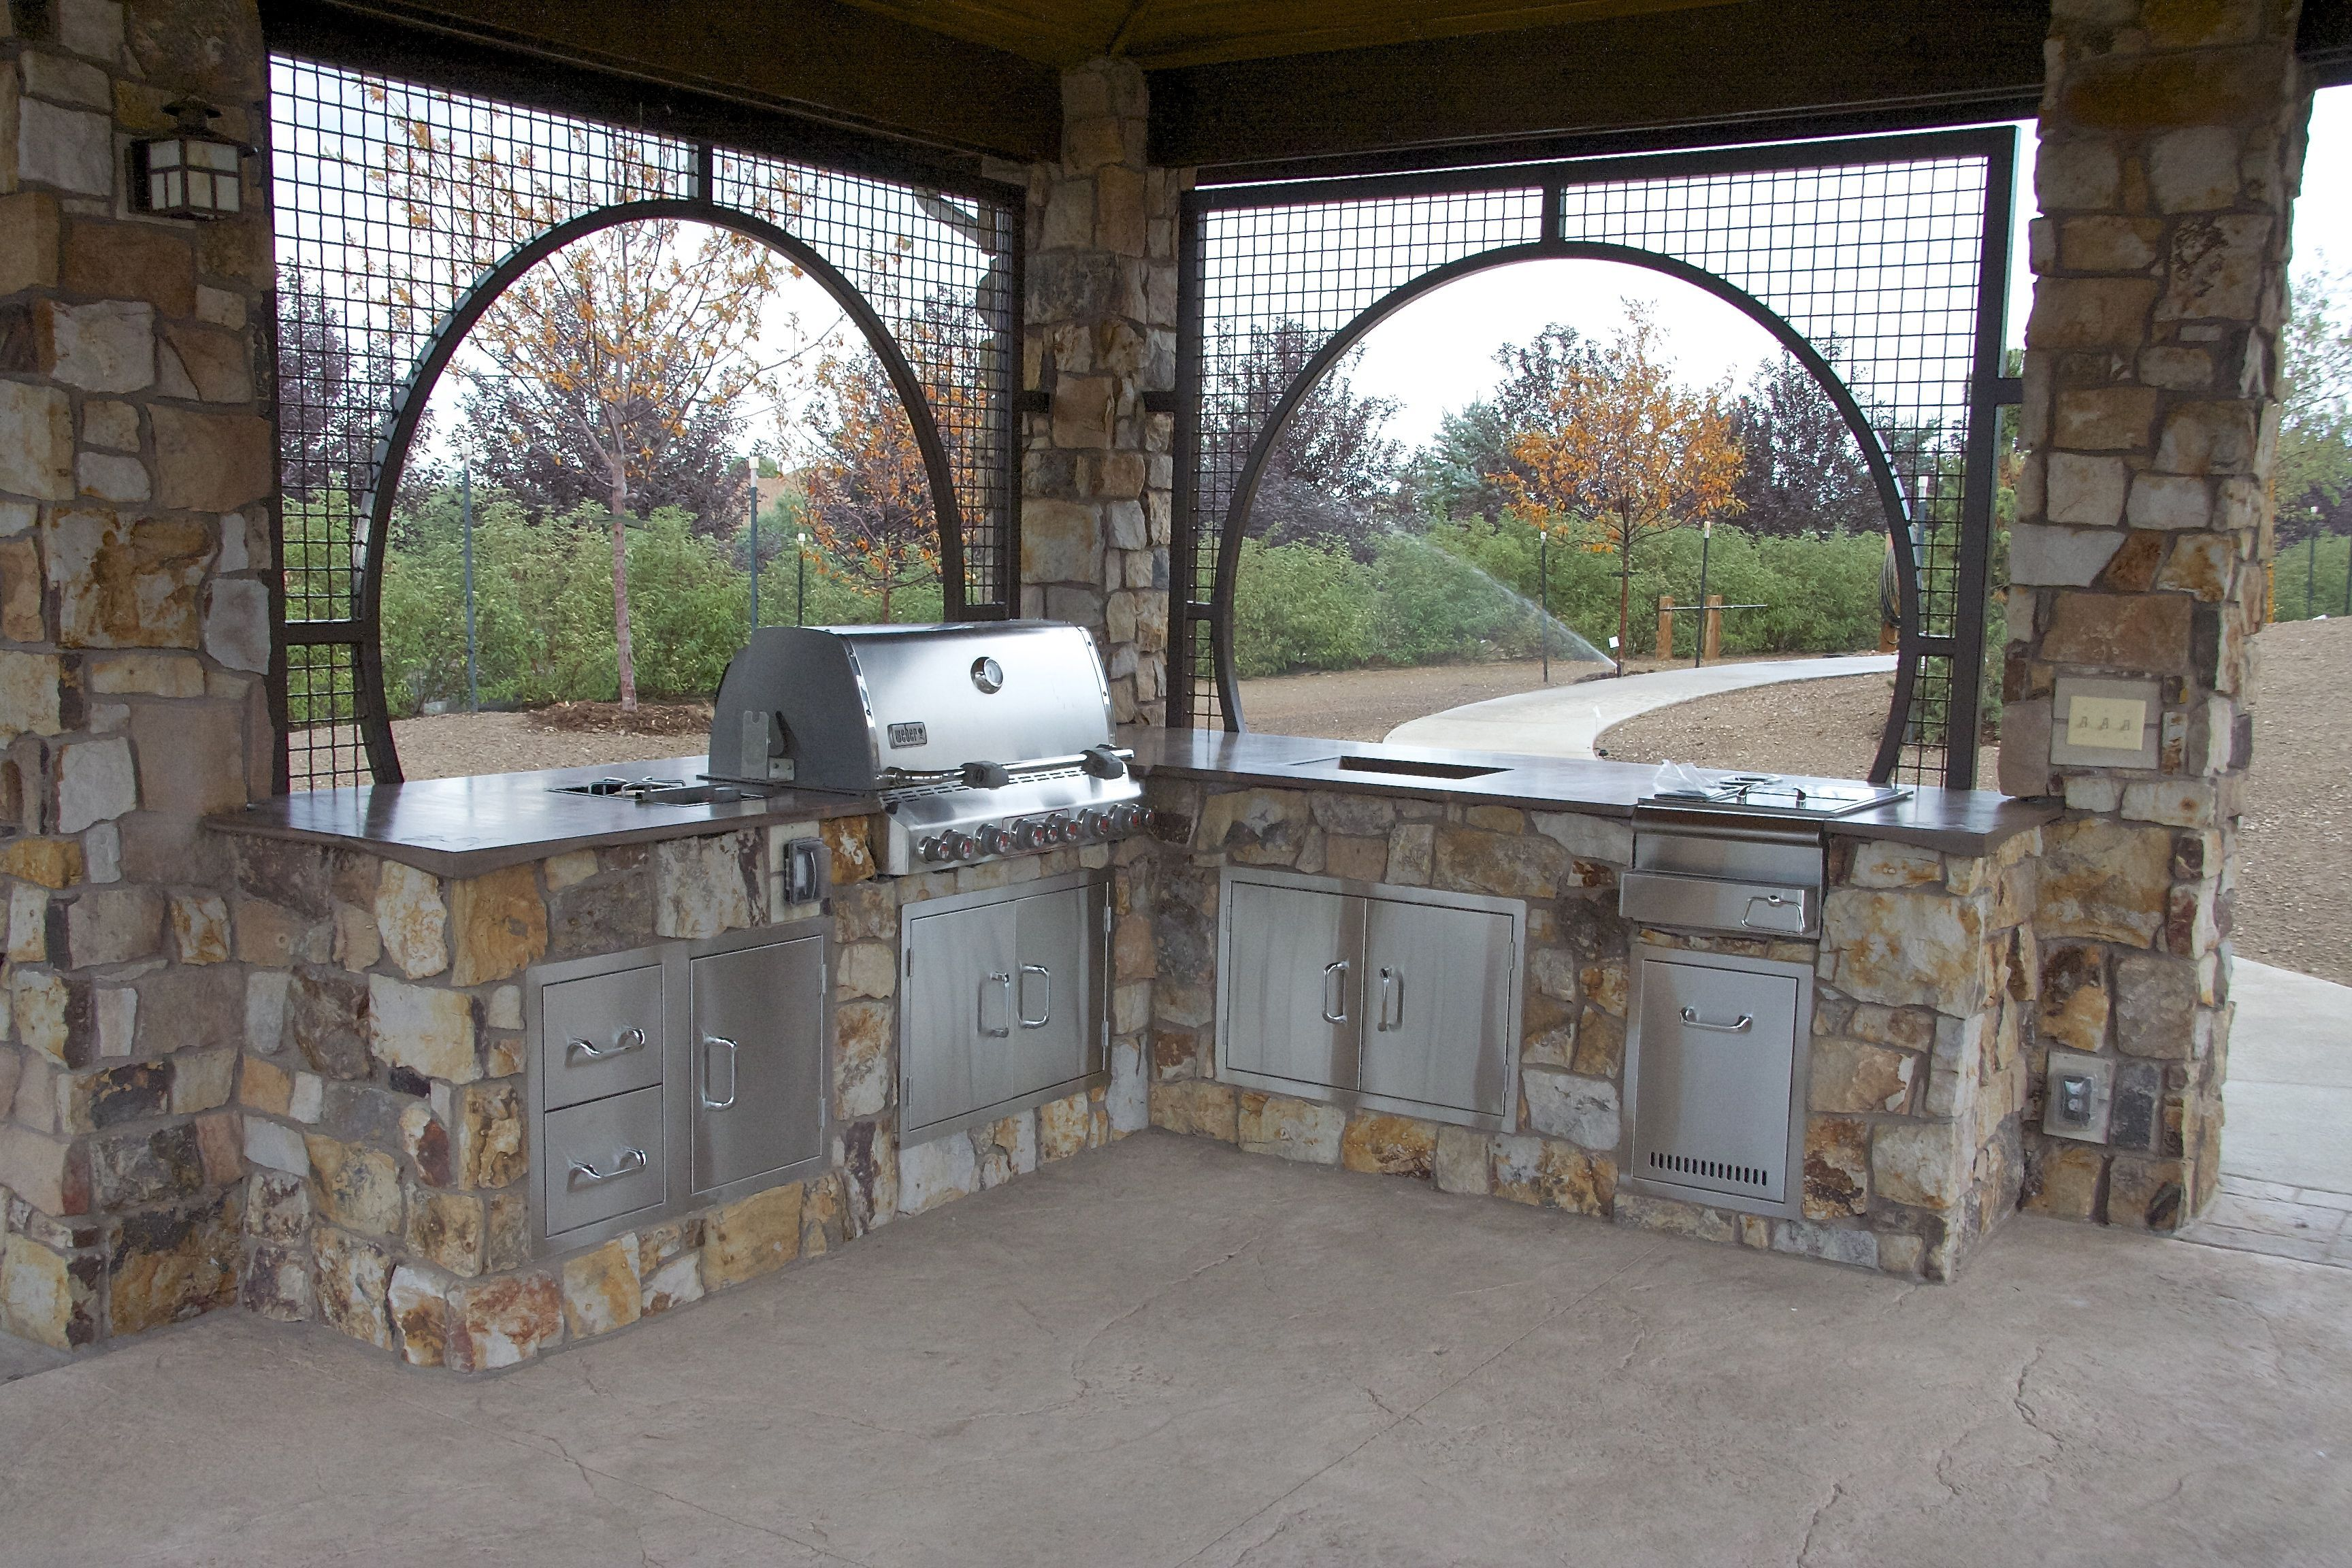 outdoor kitchens outdoor rooms ramada custom iron work bbq natural stone veneer concrete on outdoor kitchen natural id=41987